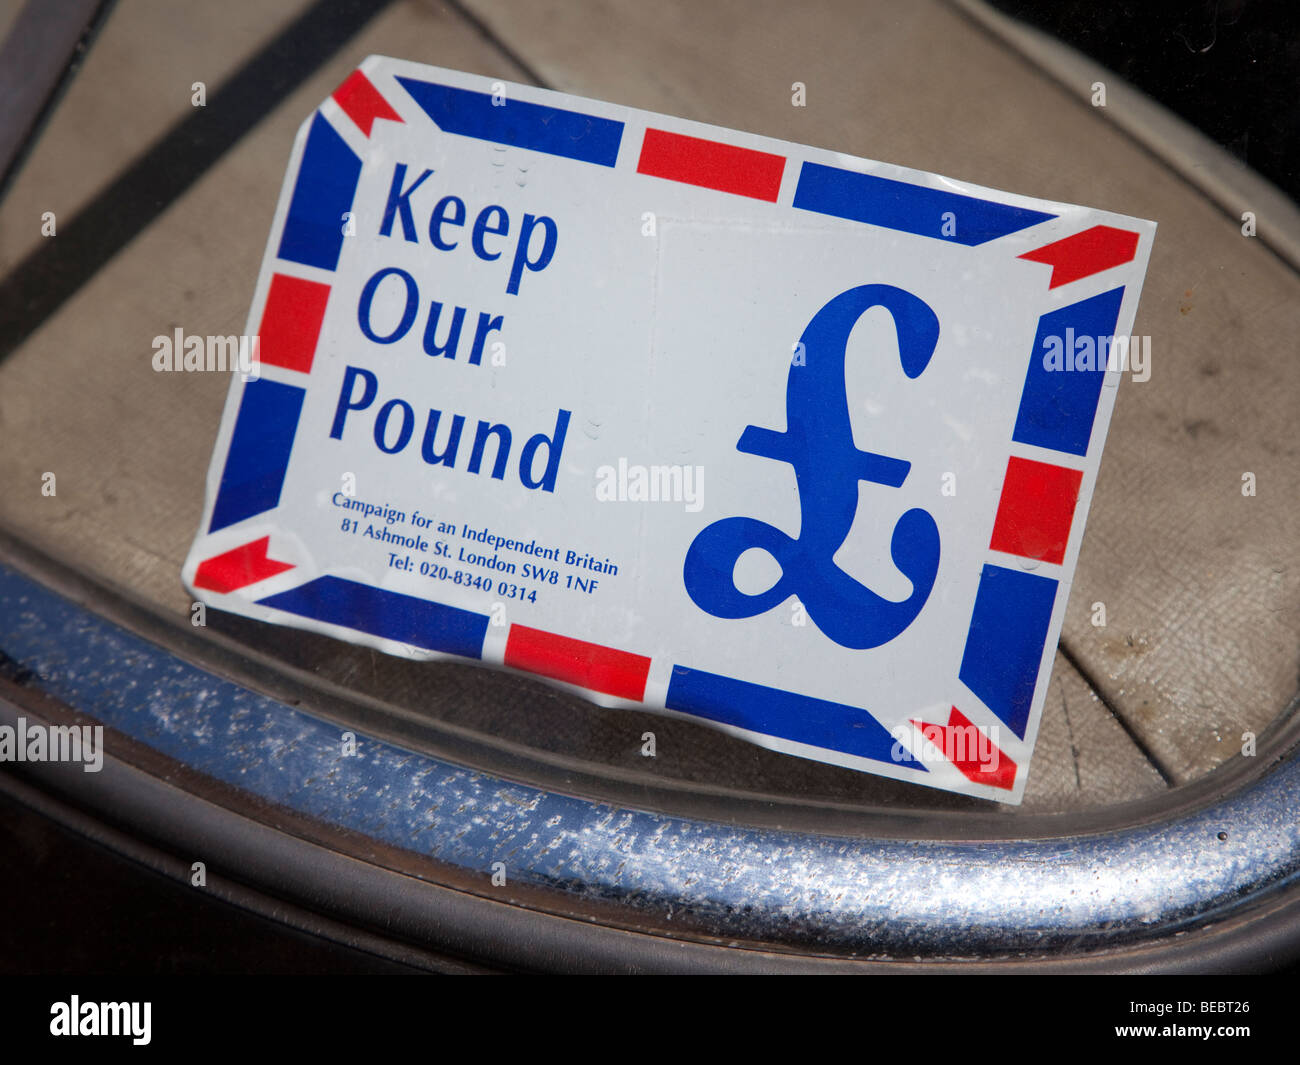 Keep our Pound campaign sticker in car windscreen England UK - Stock Image